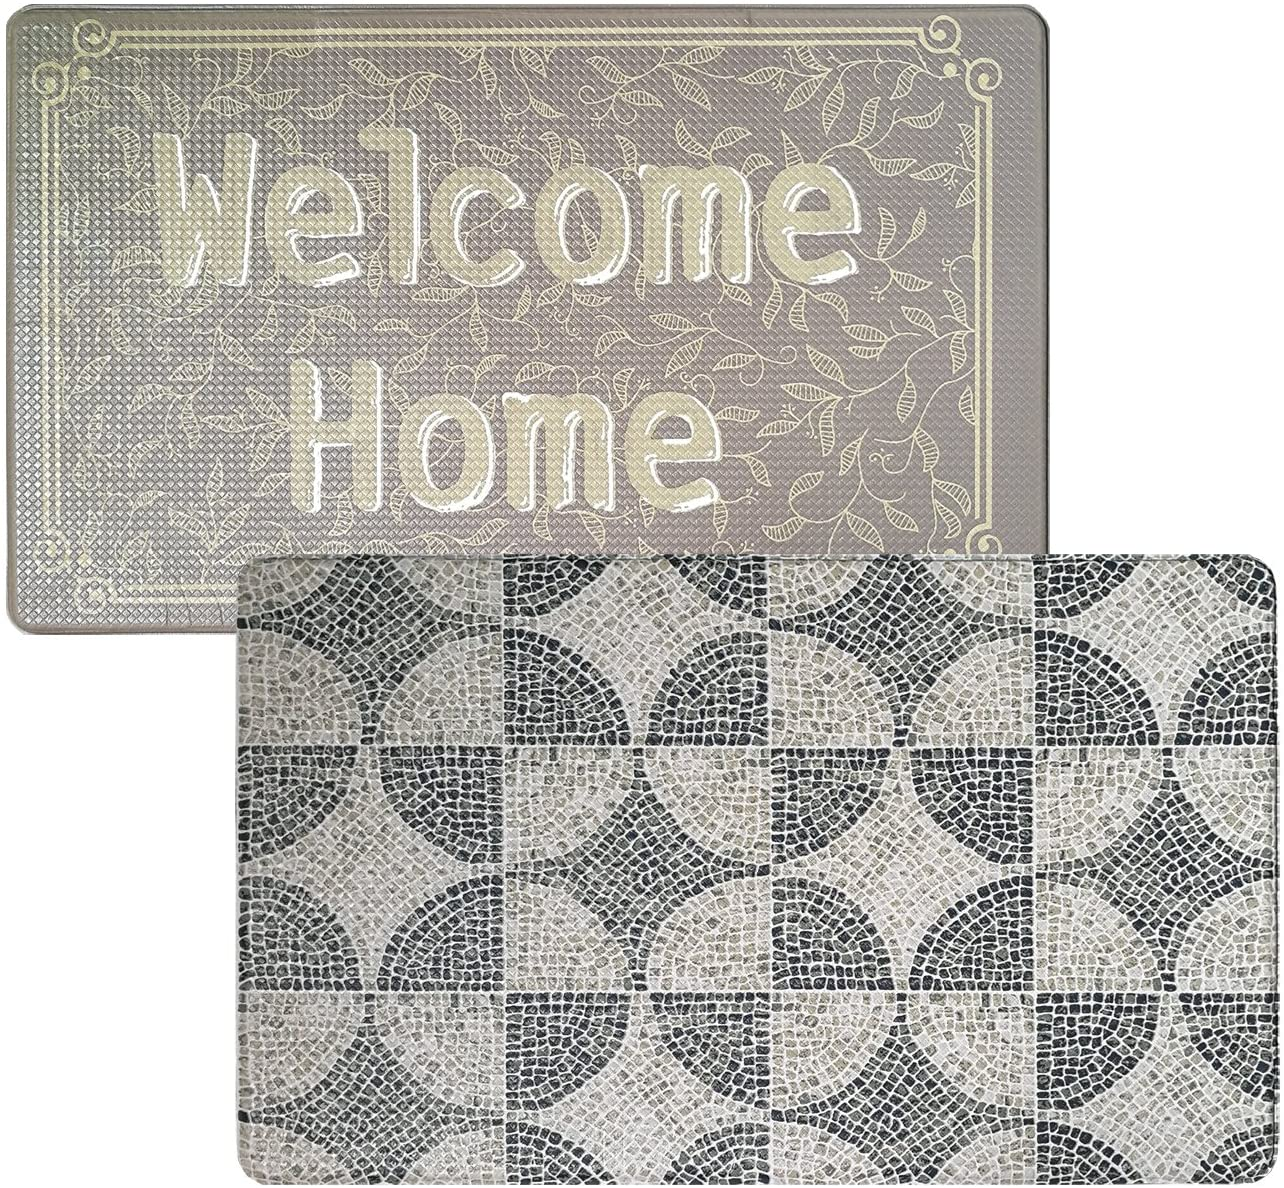 Art3d Premium Double-Sided Anti-Fatigue Kitchen Mat. Multi-Purpose Standing Mat for The Kitchen, Bathroom, Laundry Room or Office, 18